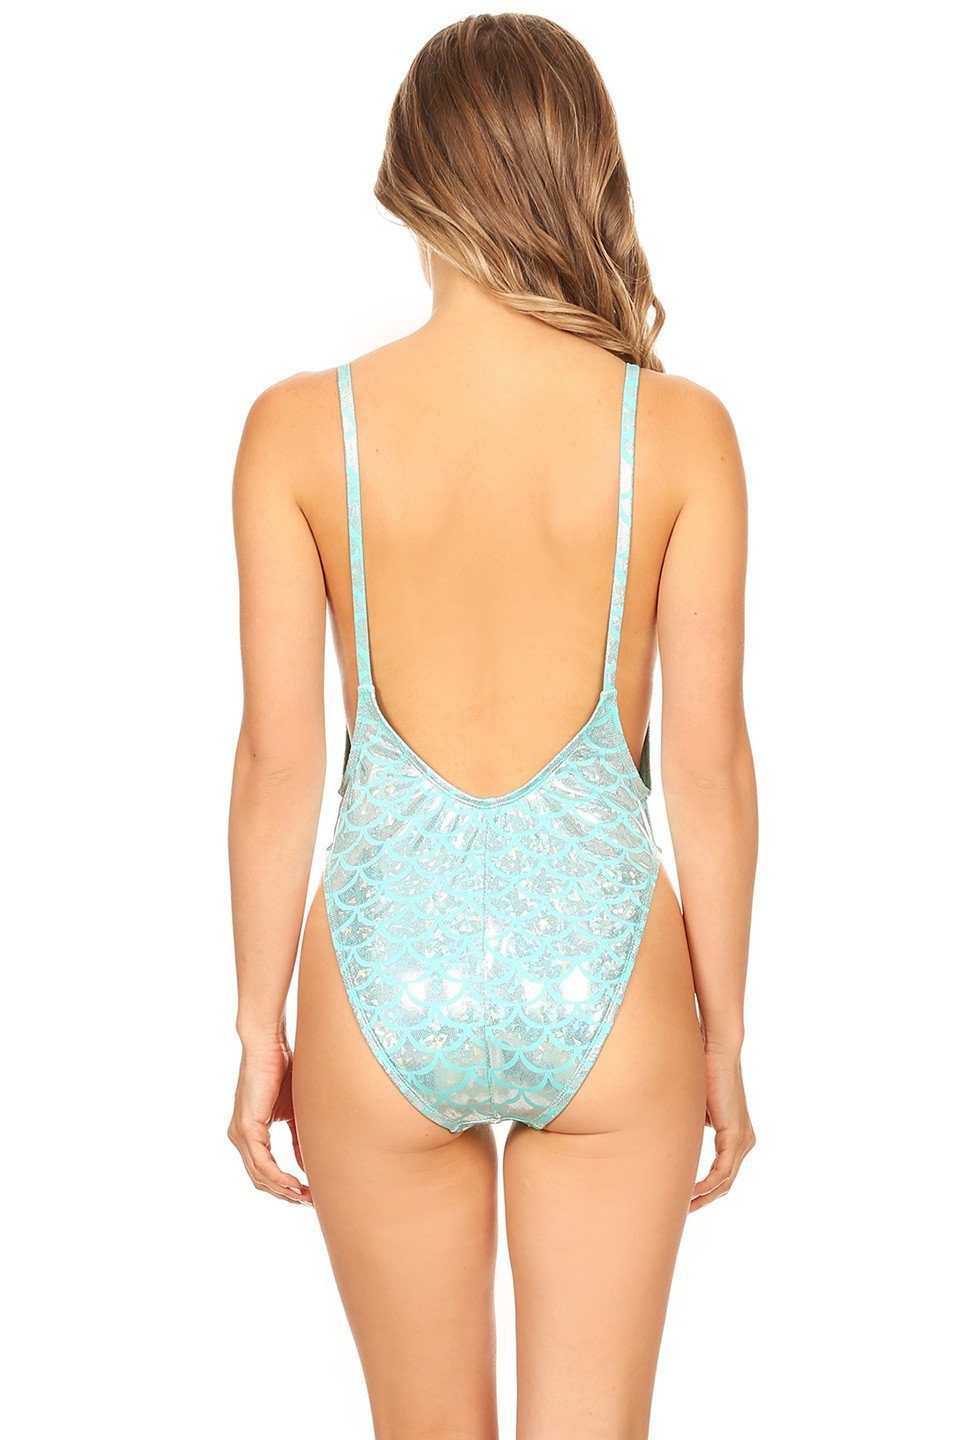 Blue Scales Mermaid High Cut Vintage Swimsuit Back - Dippin' Daisy's Swimwear